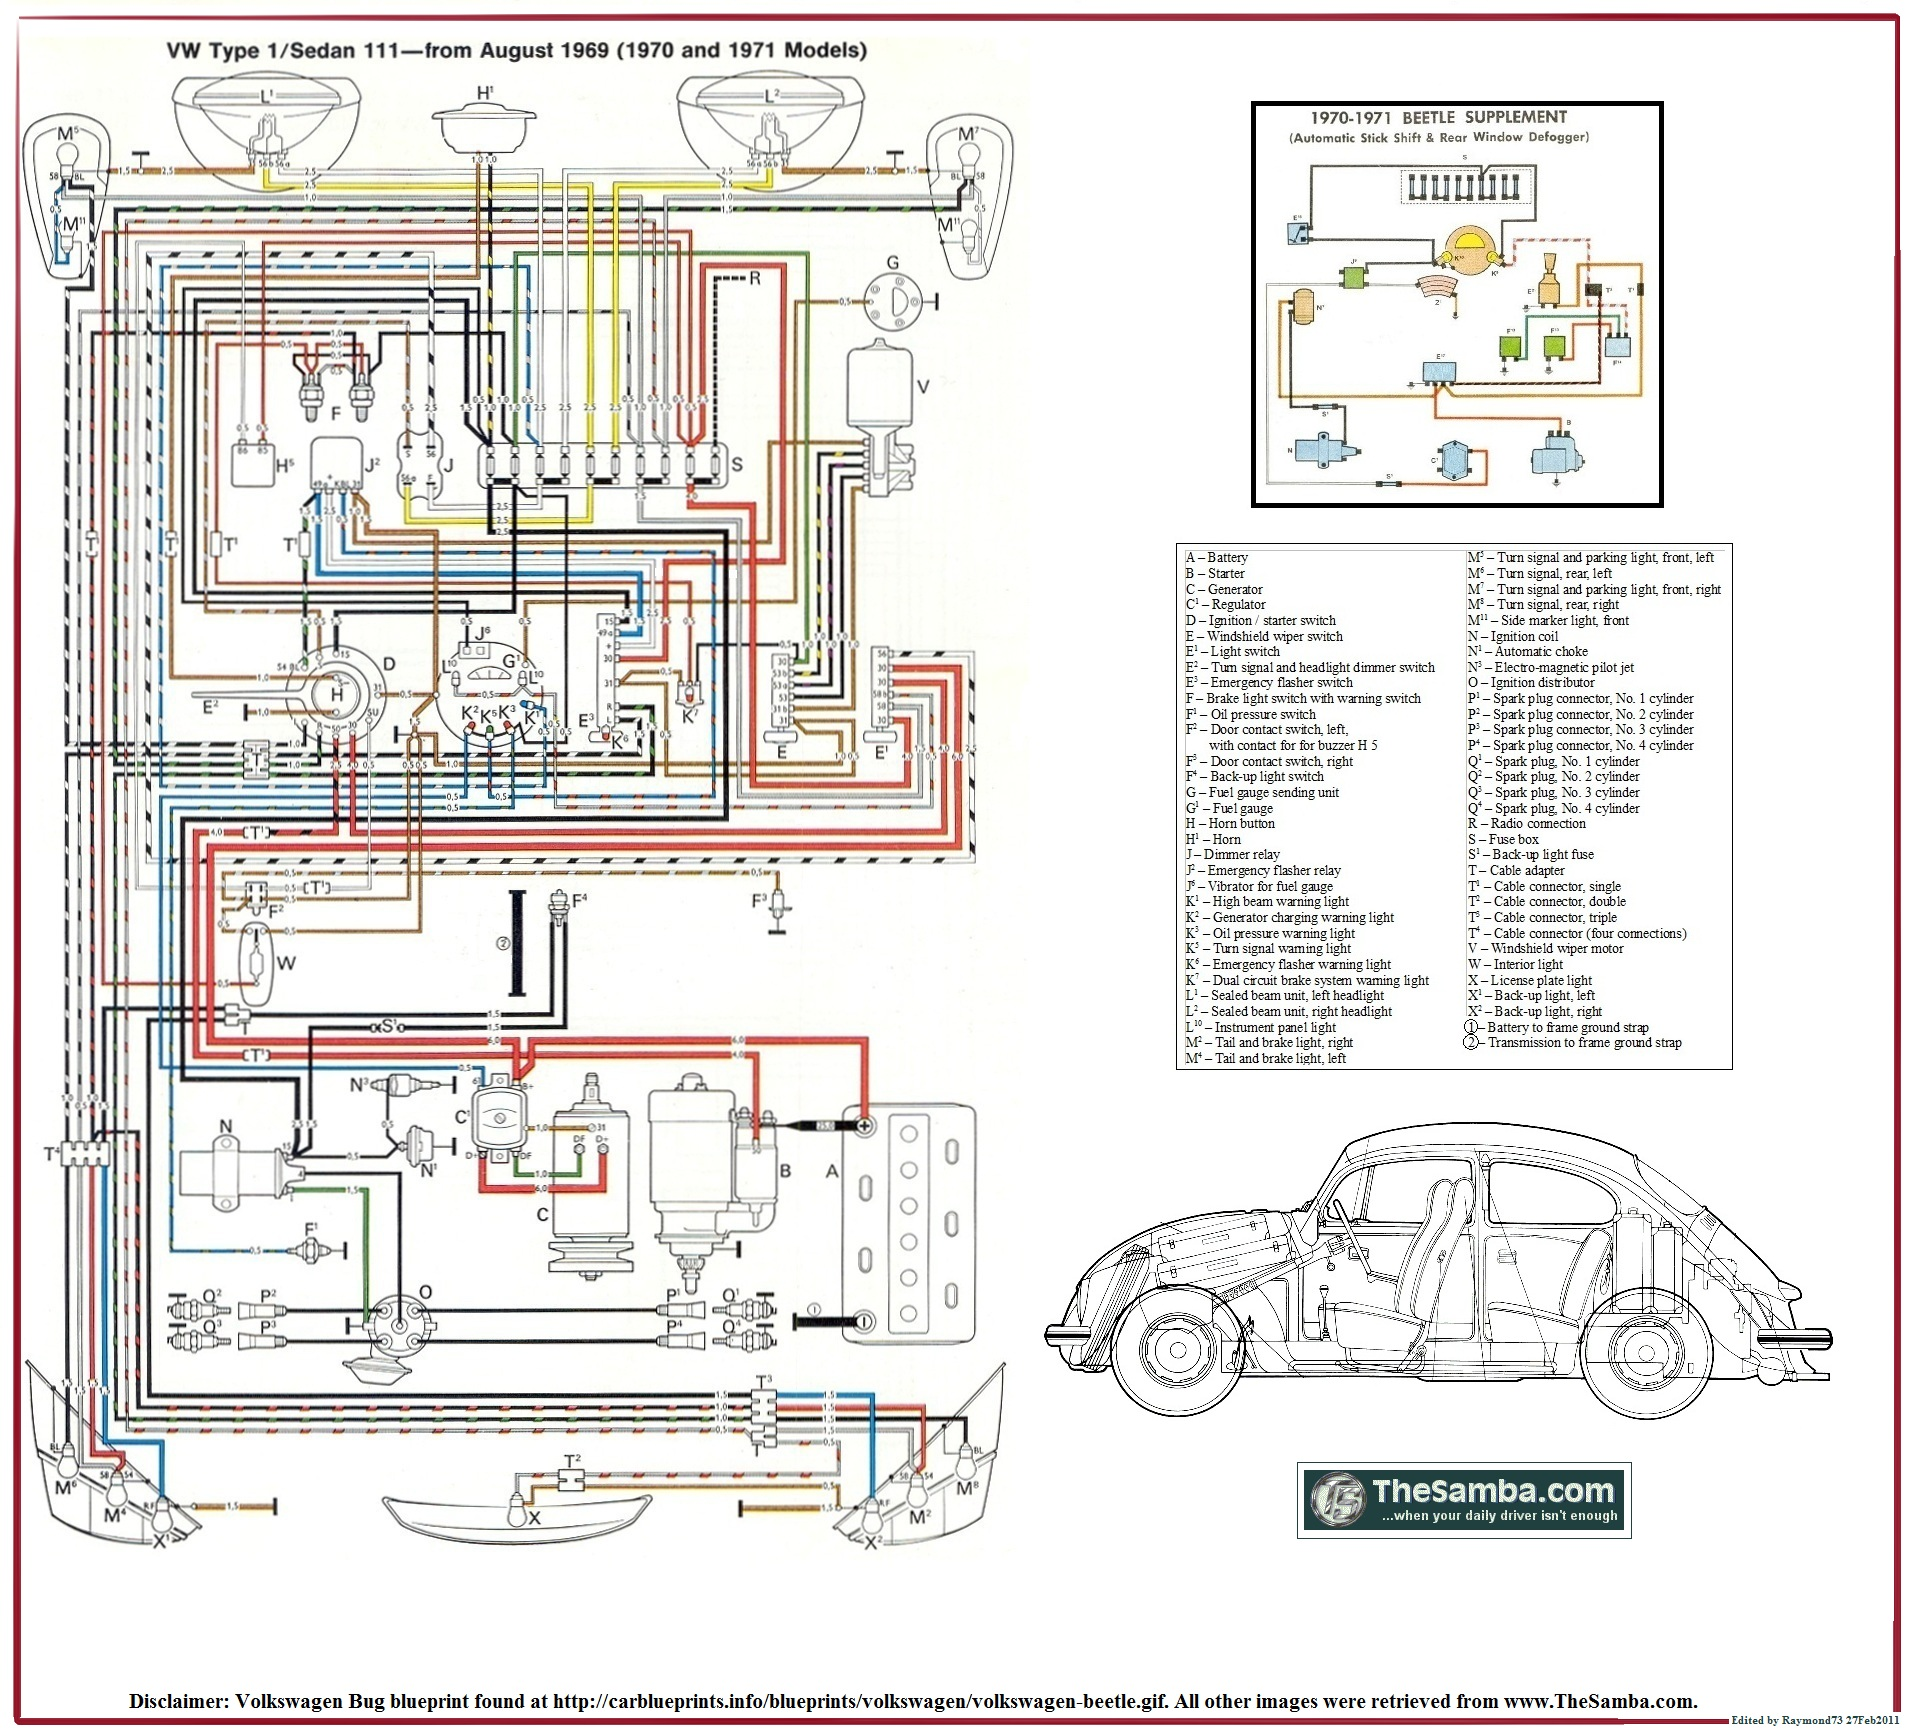 1970_VW_Type_1_Poster thesamba com beetle late model super 1968 up view topic vw bug wiring diagram at readyjetset.co